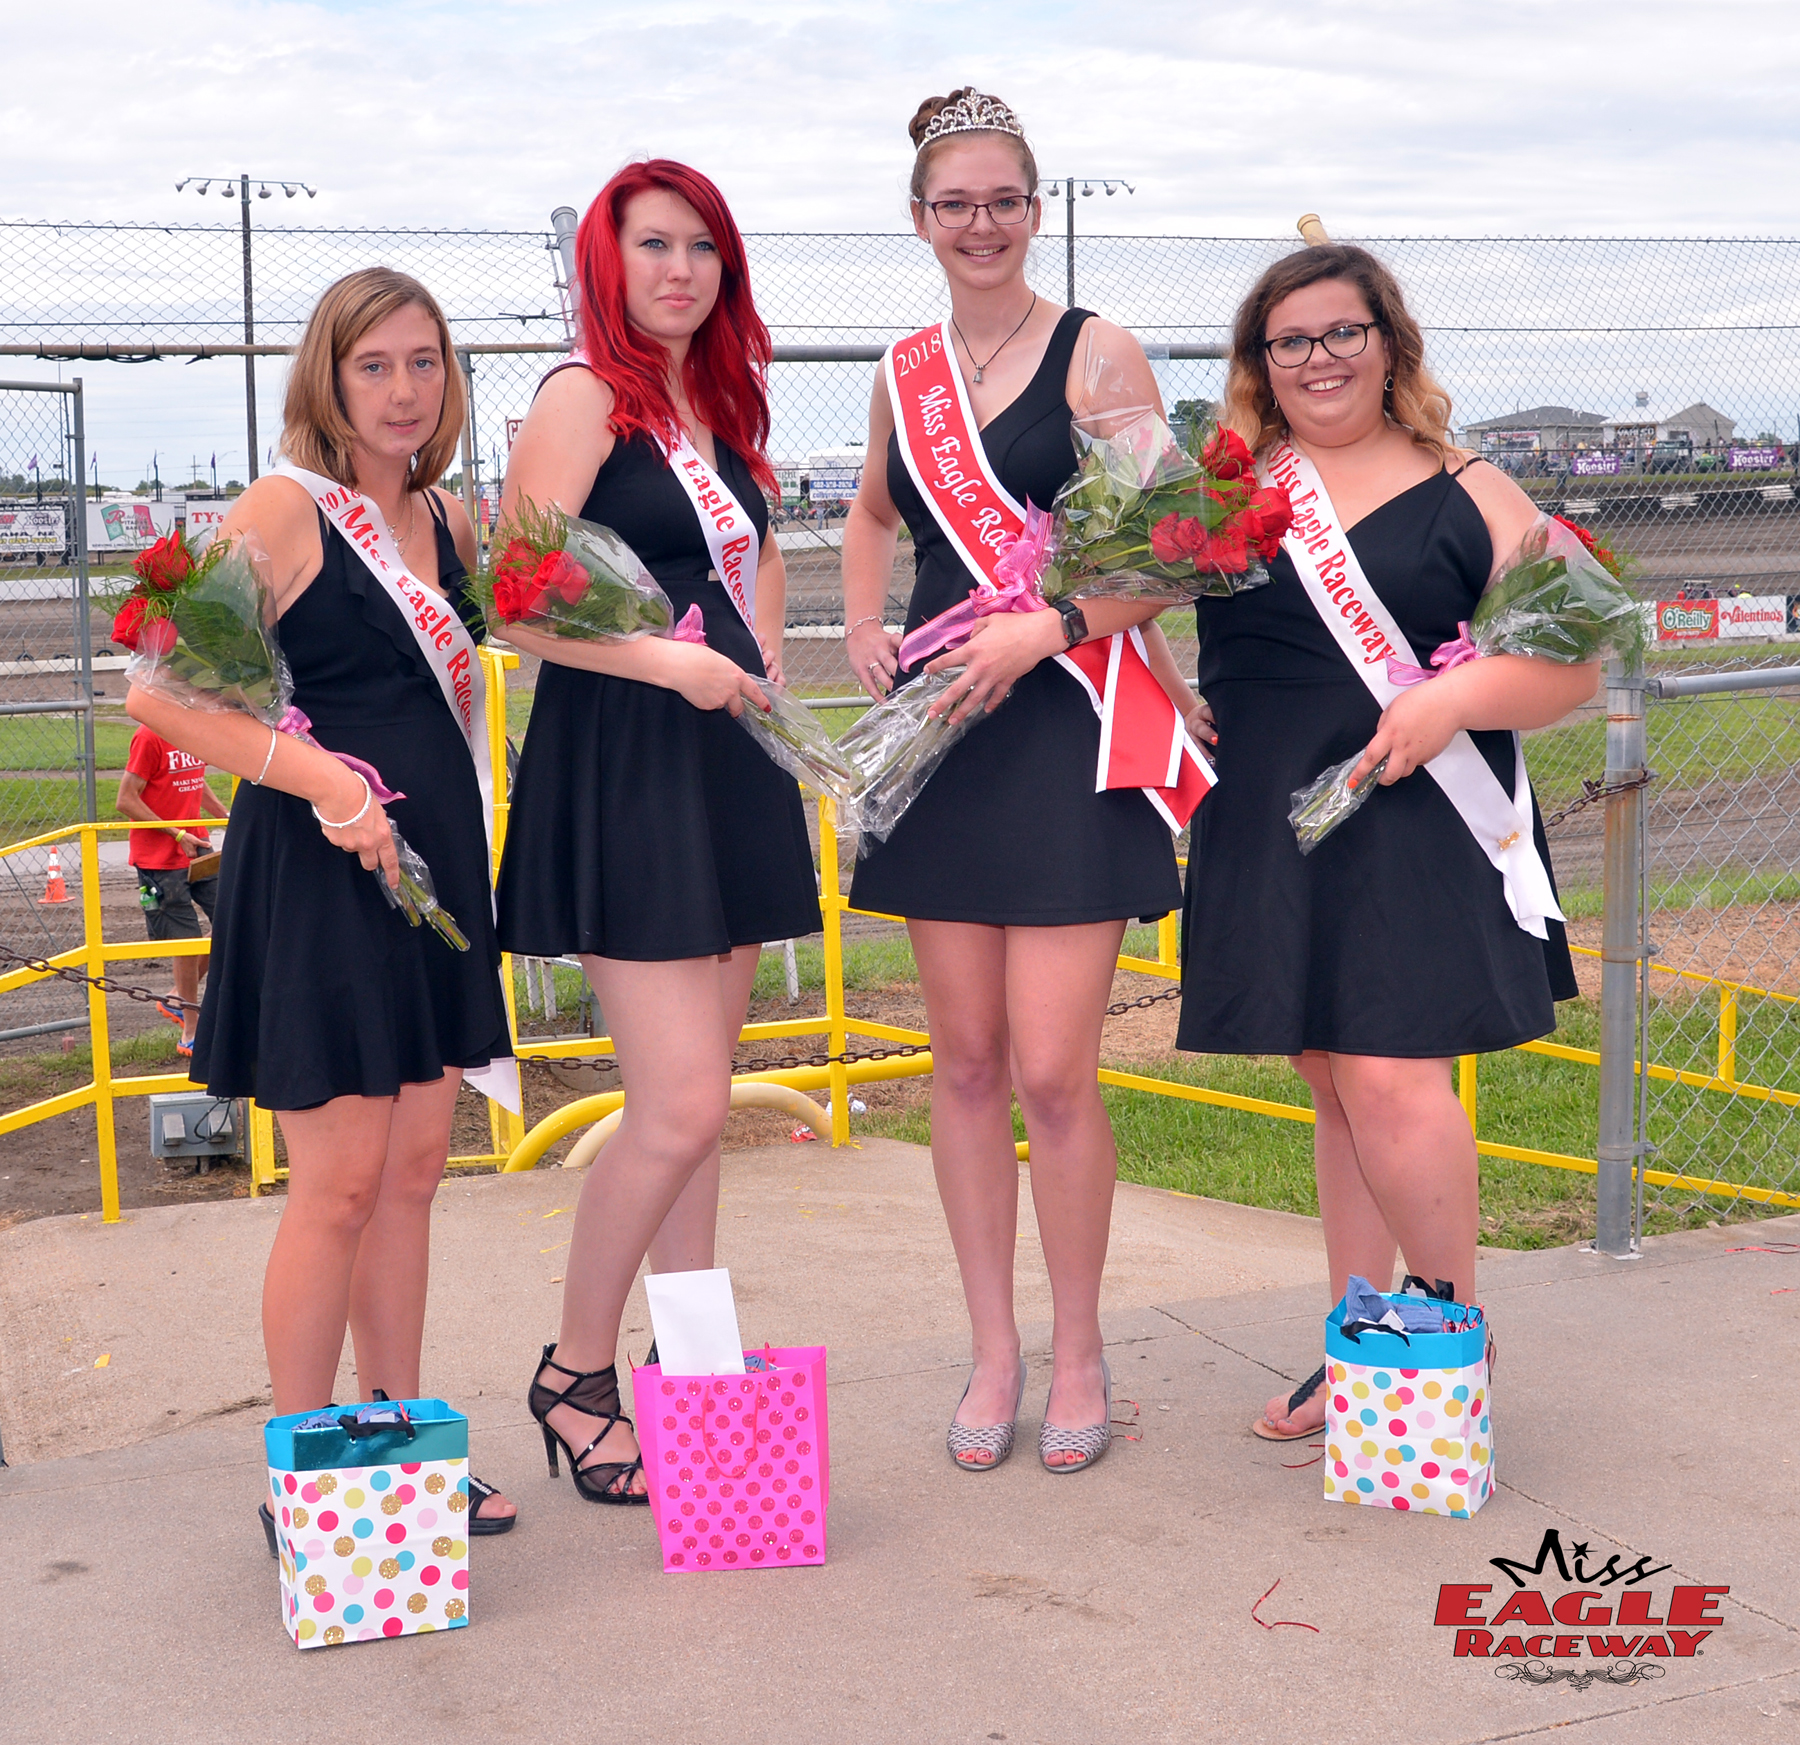 CJ Jurgens was crowned 2018 Miss Eagle Raceway at RaceSaver Nationals